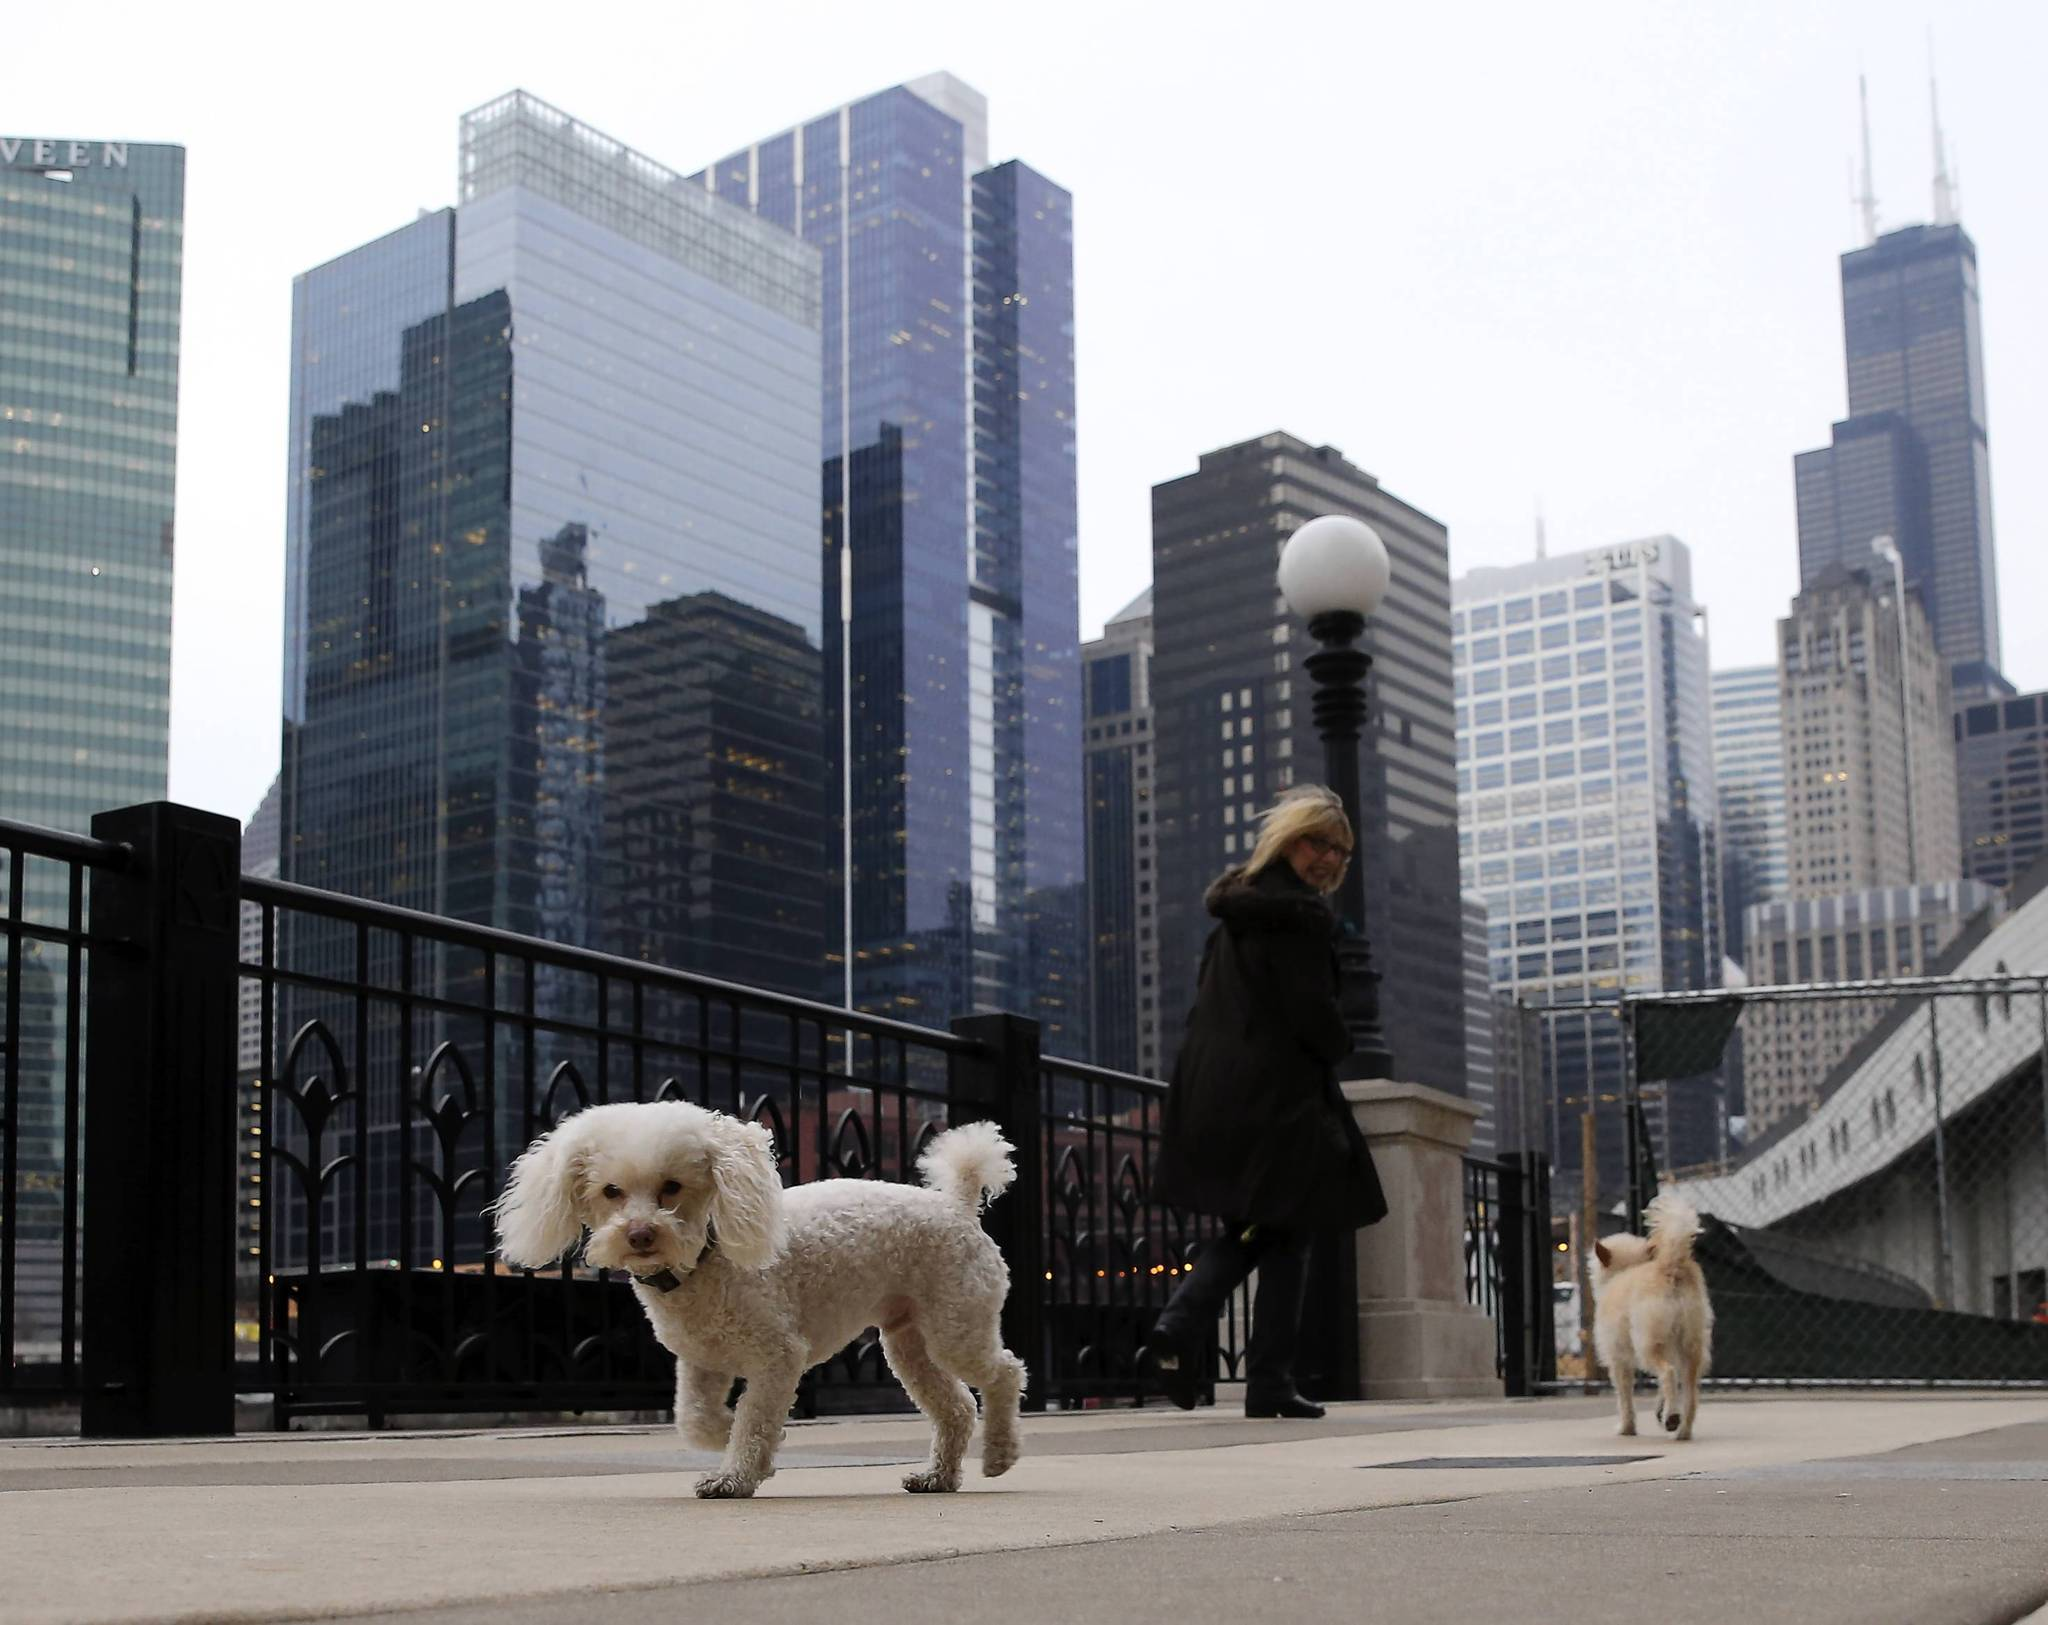 Linda Zager and her dogs, Cooper and Caleb, go for a walk outside of her building at 333 N. Canal St. in Chicago.